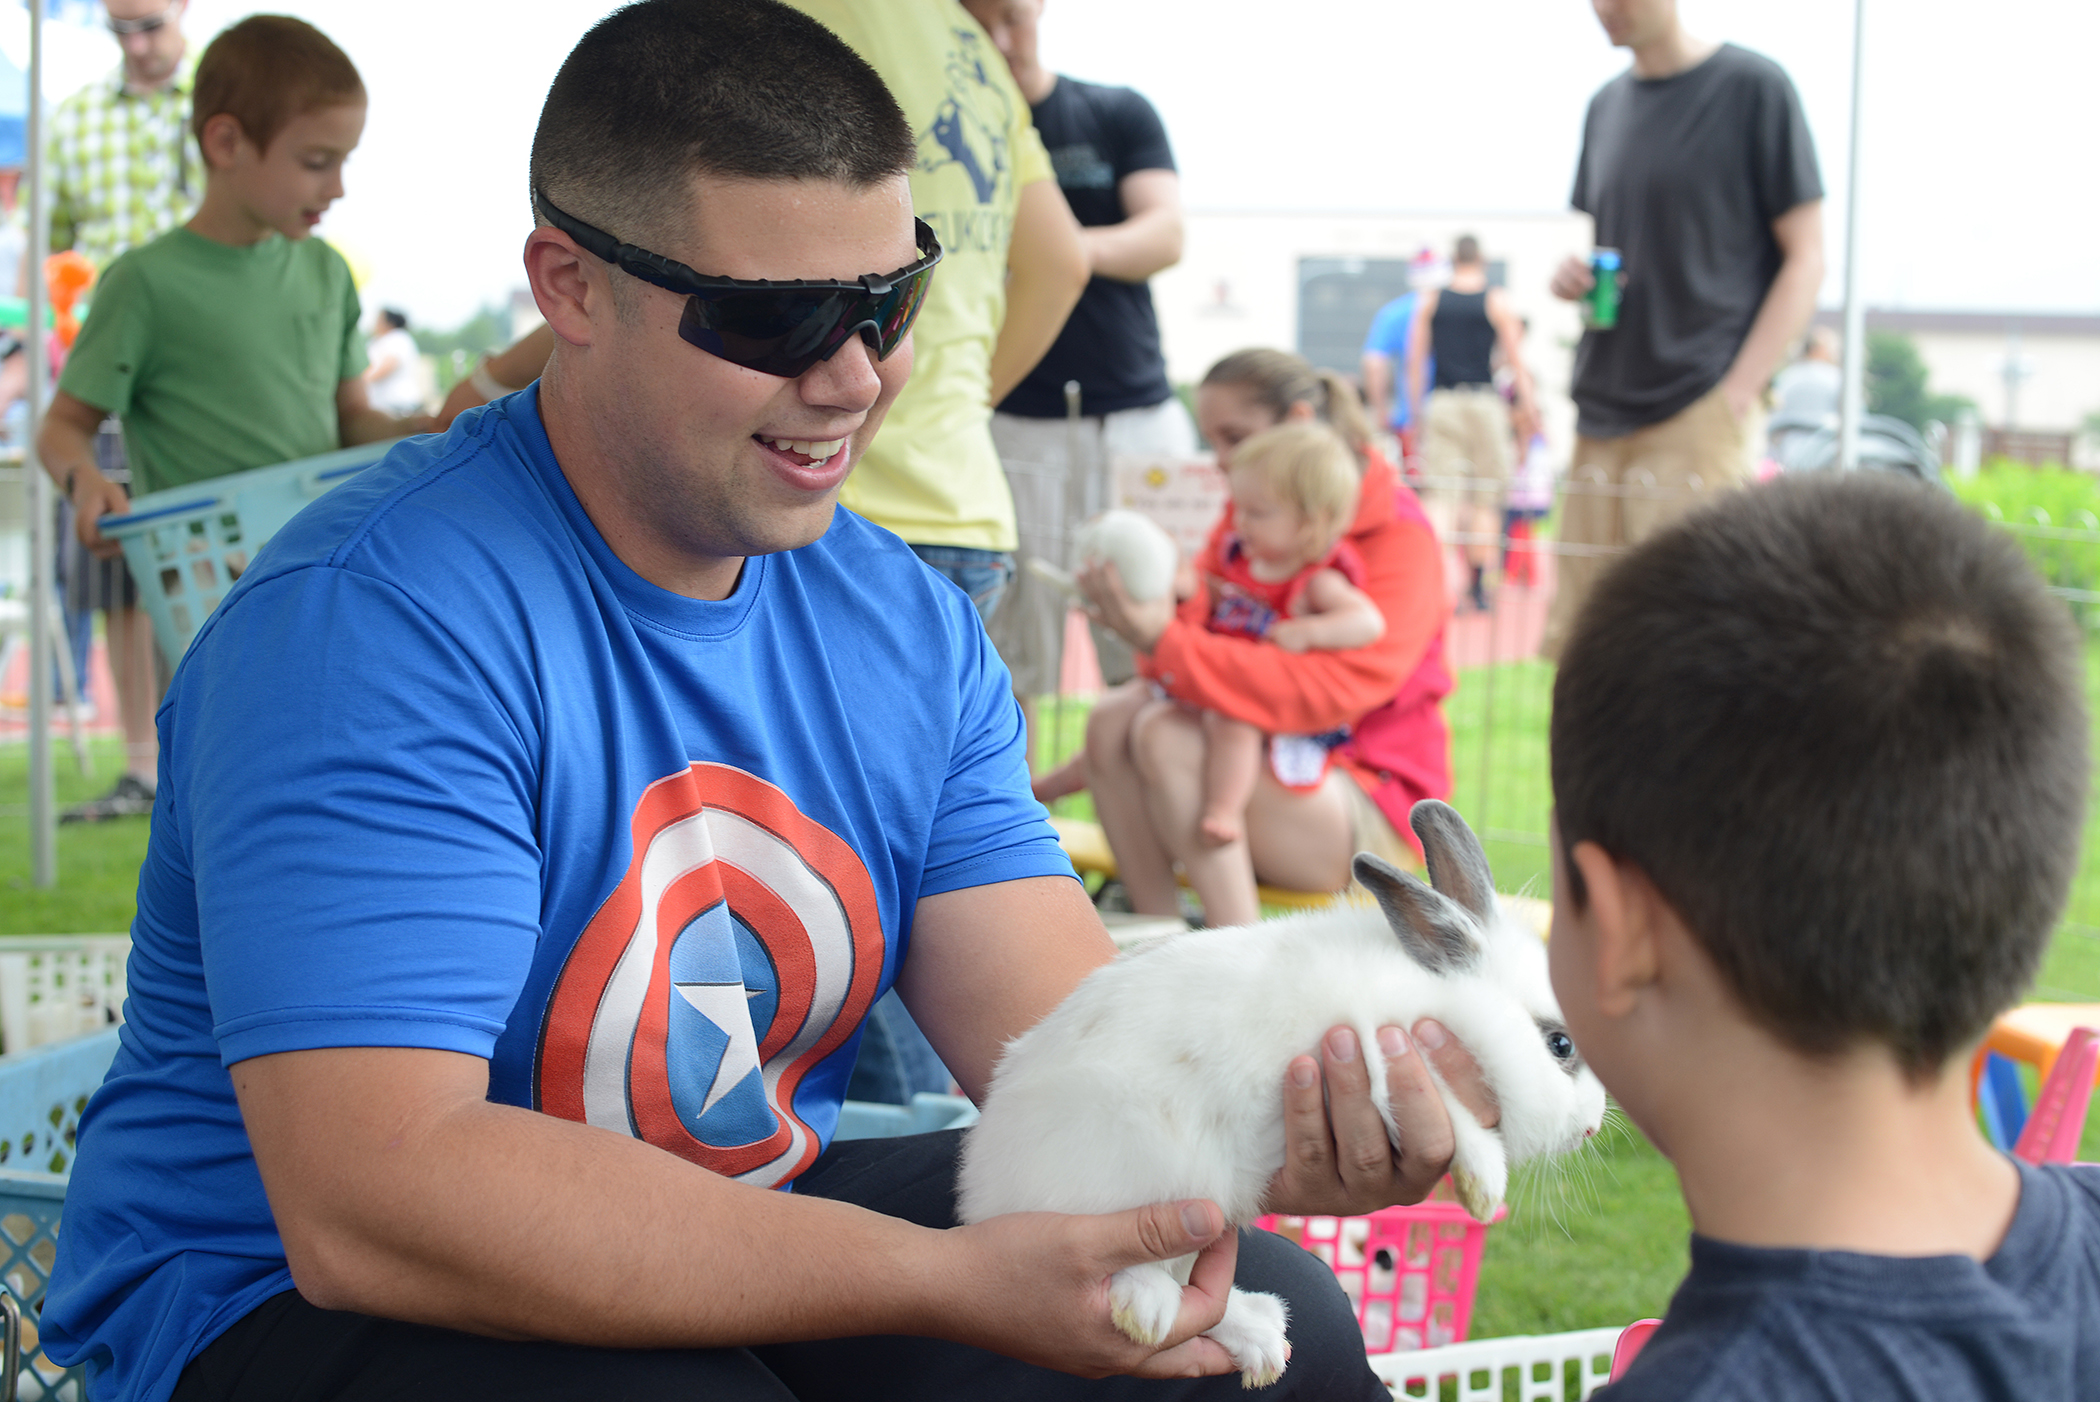 A team Yokota member holds a bunny in a petting zoo during the Celebrate America event at Yokota Air Base, Japan, July 2, 2015. The 374th Force Support Squadron hosted events throughout the day to include a 5k Fun Run, the Leaky Kon Tiki race, go-karts, carnival booths and performances from the Band of the Pacific-Hawaii 'Hana Hou!'. (U.S. Air Force photo by Airman 1st Class David C. Danford/Released)